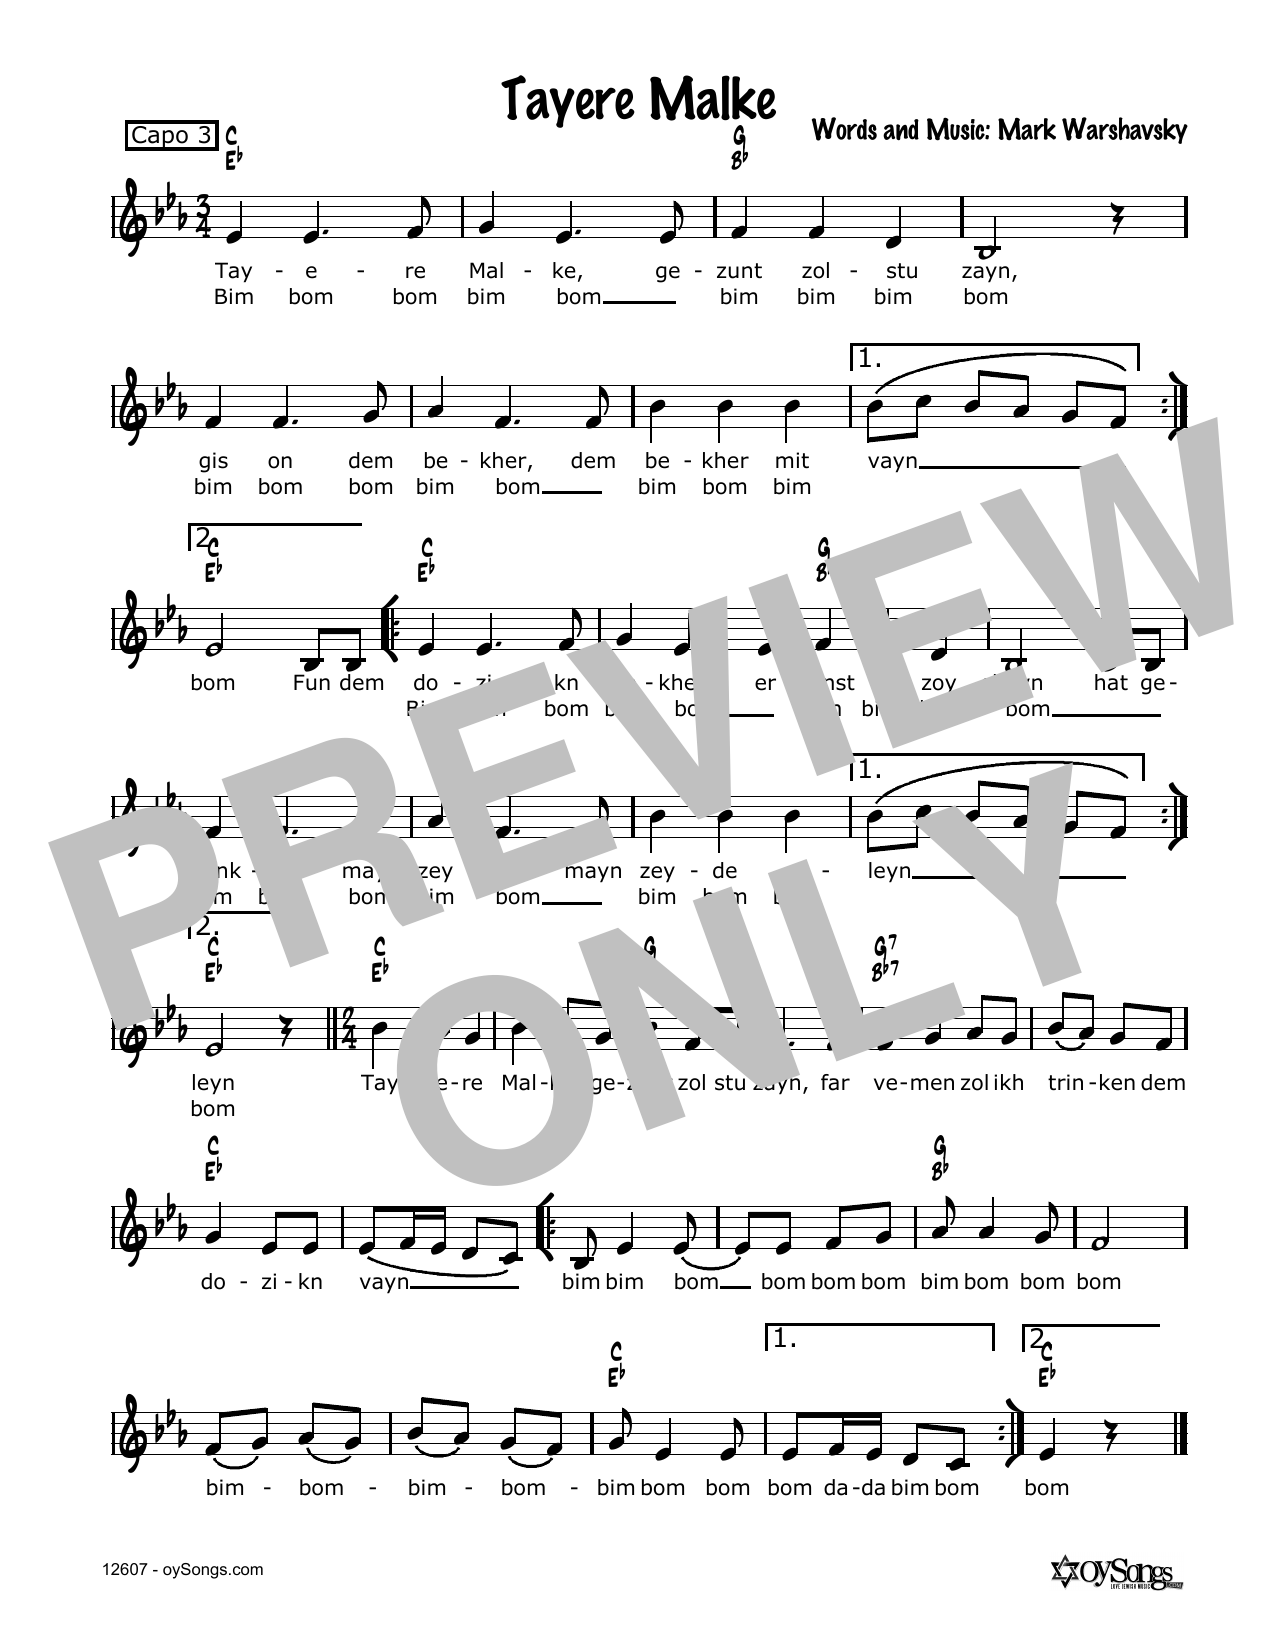 Cindy Paley Tayere Malke sheet music notes and chords. Download Printable PDF.